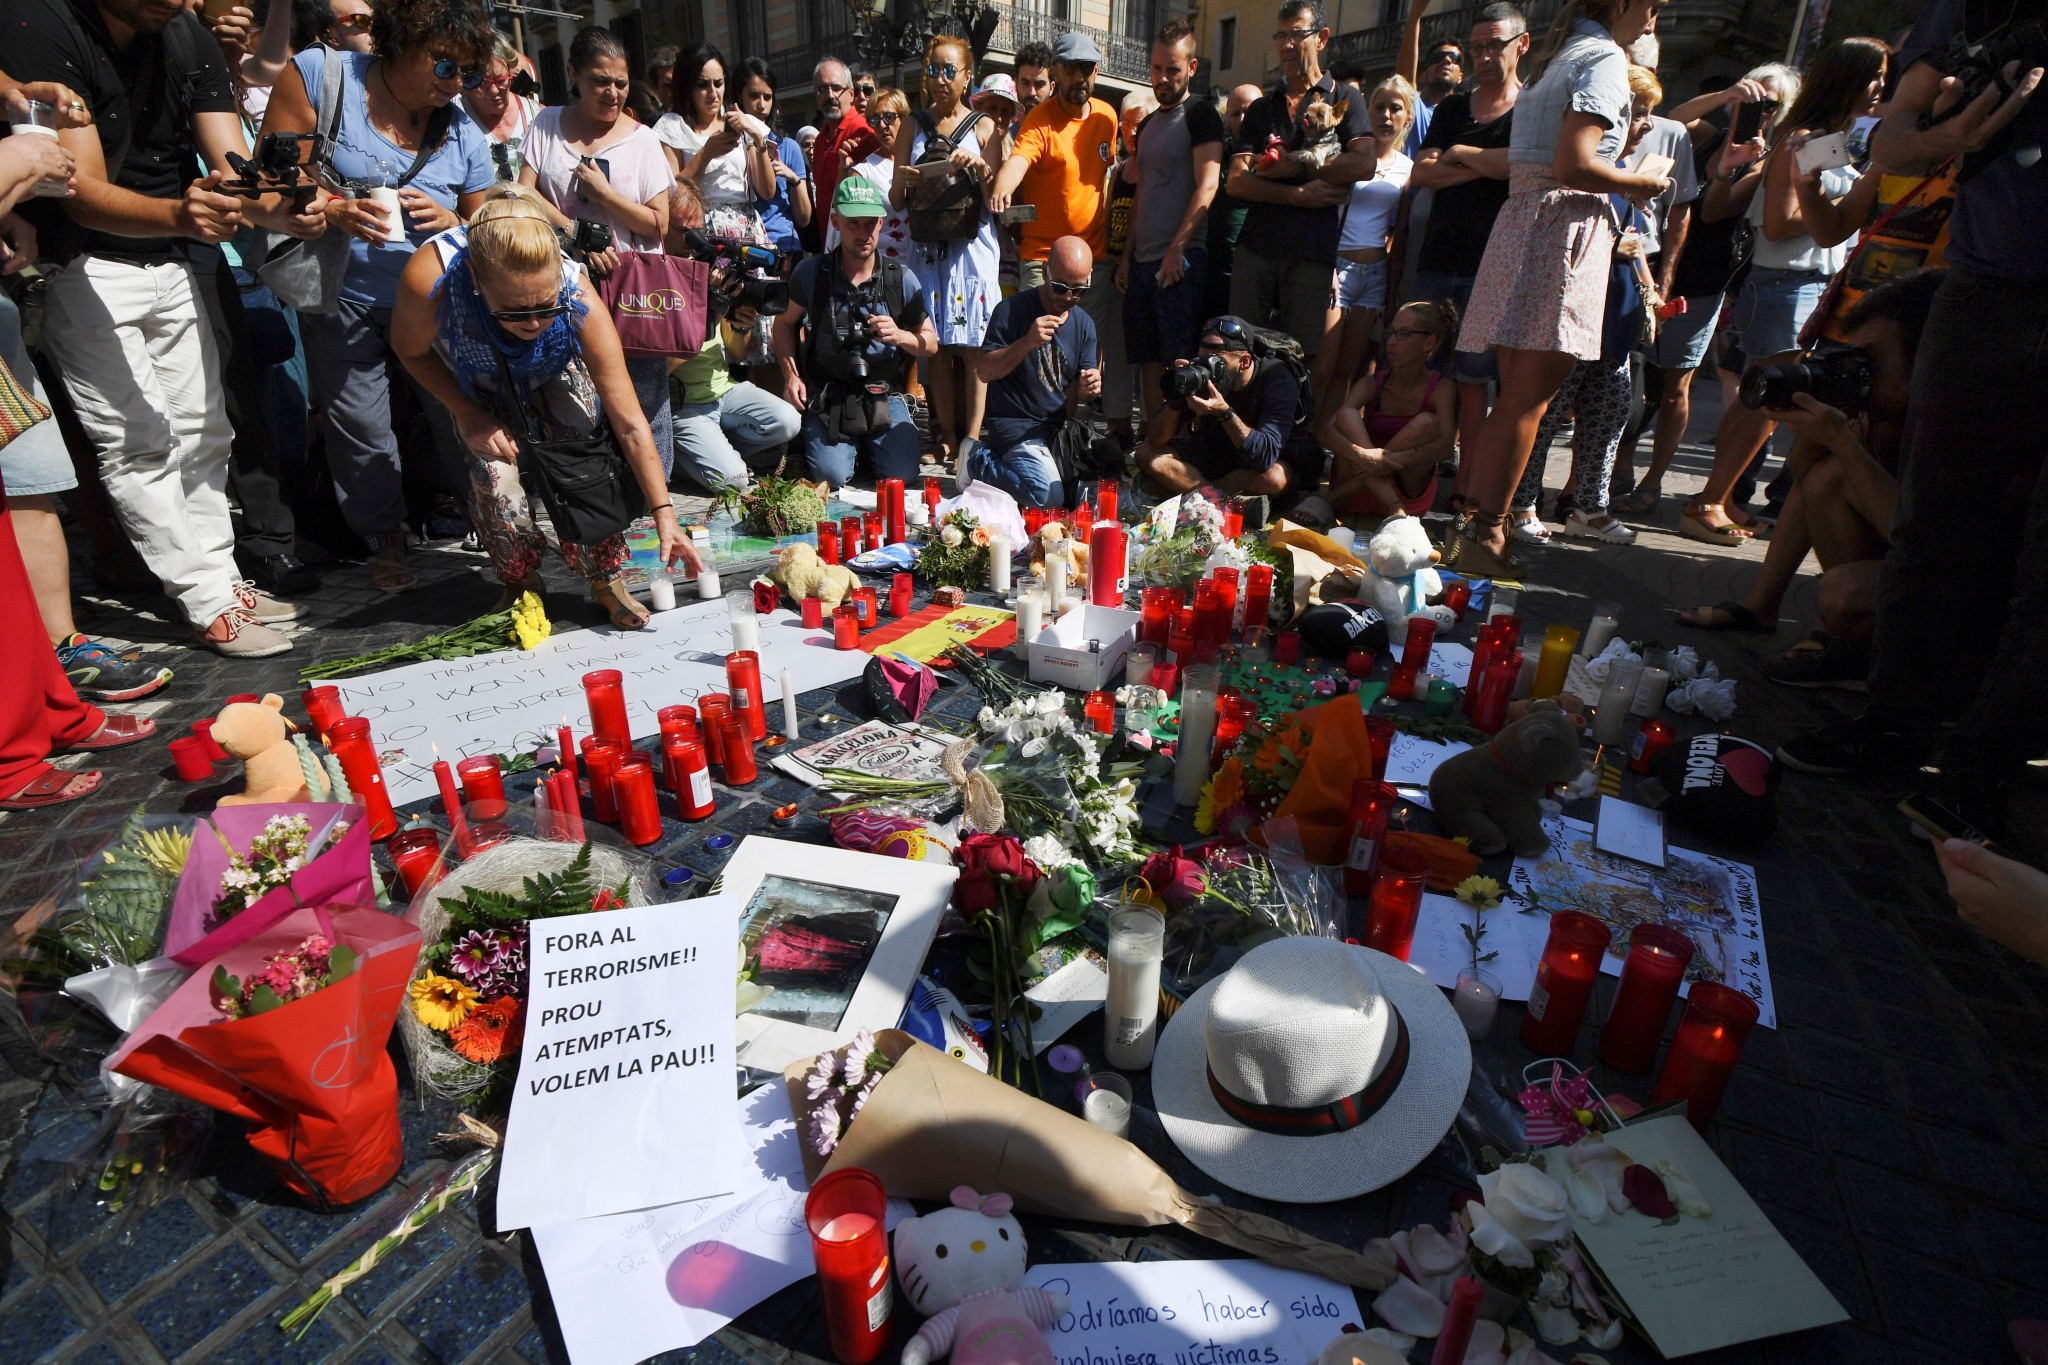 Bach says IOC condemn terrorists attacks in Spain